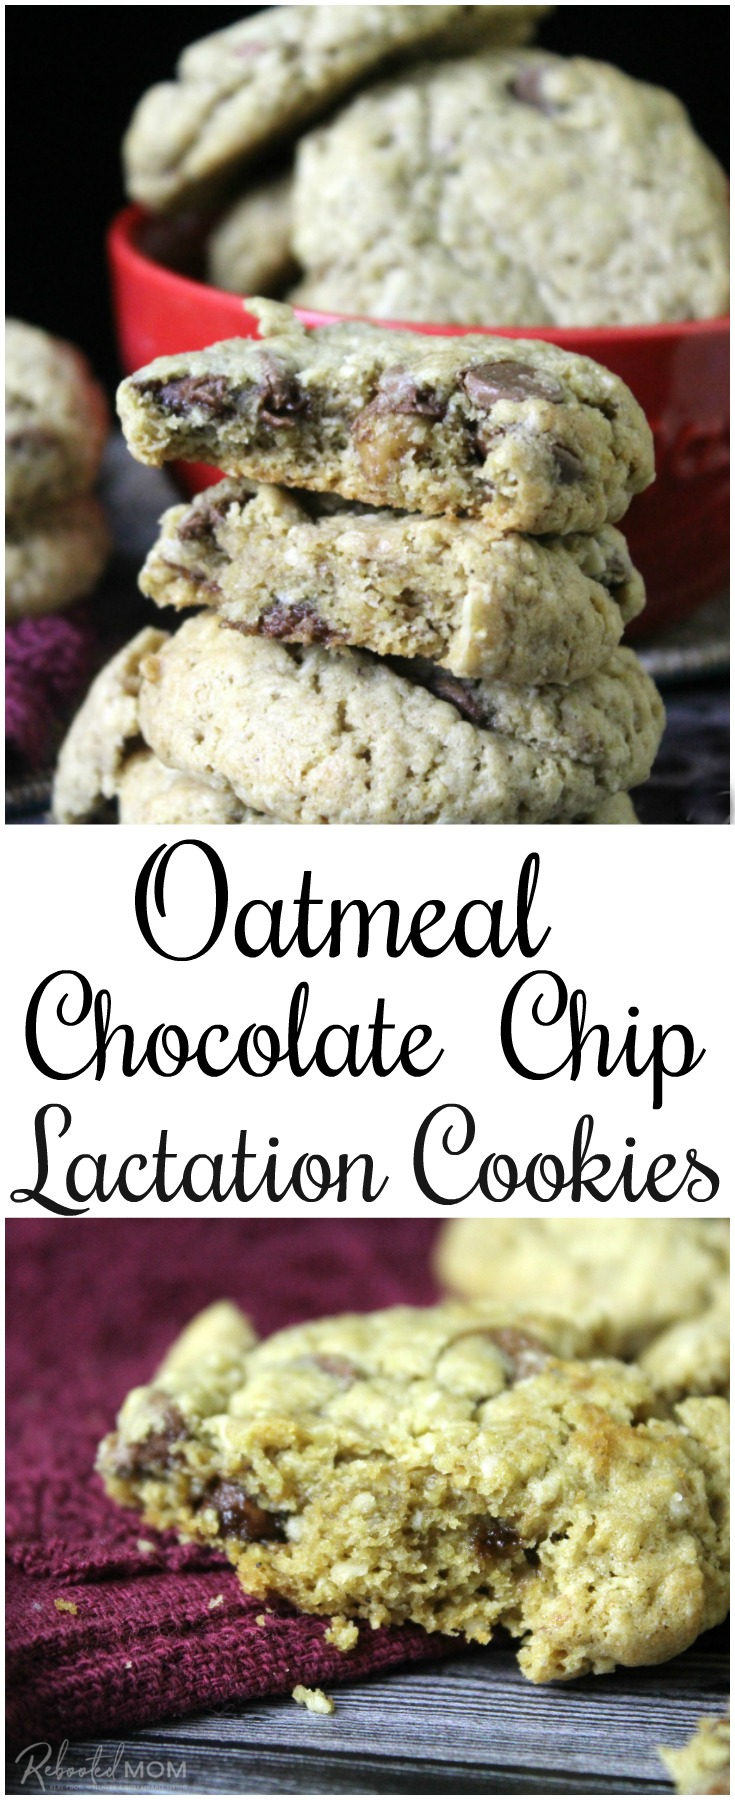 Lactation cookies are a great way to boost milk supply & help keep you nourished the first few weeks after labor and delivery. #lactationcookies #breastfeeding #mommy #baby #breastmilk #lactation #cookies